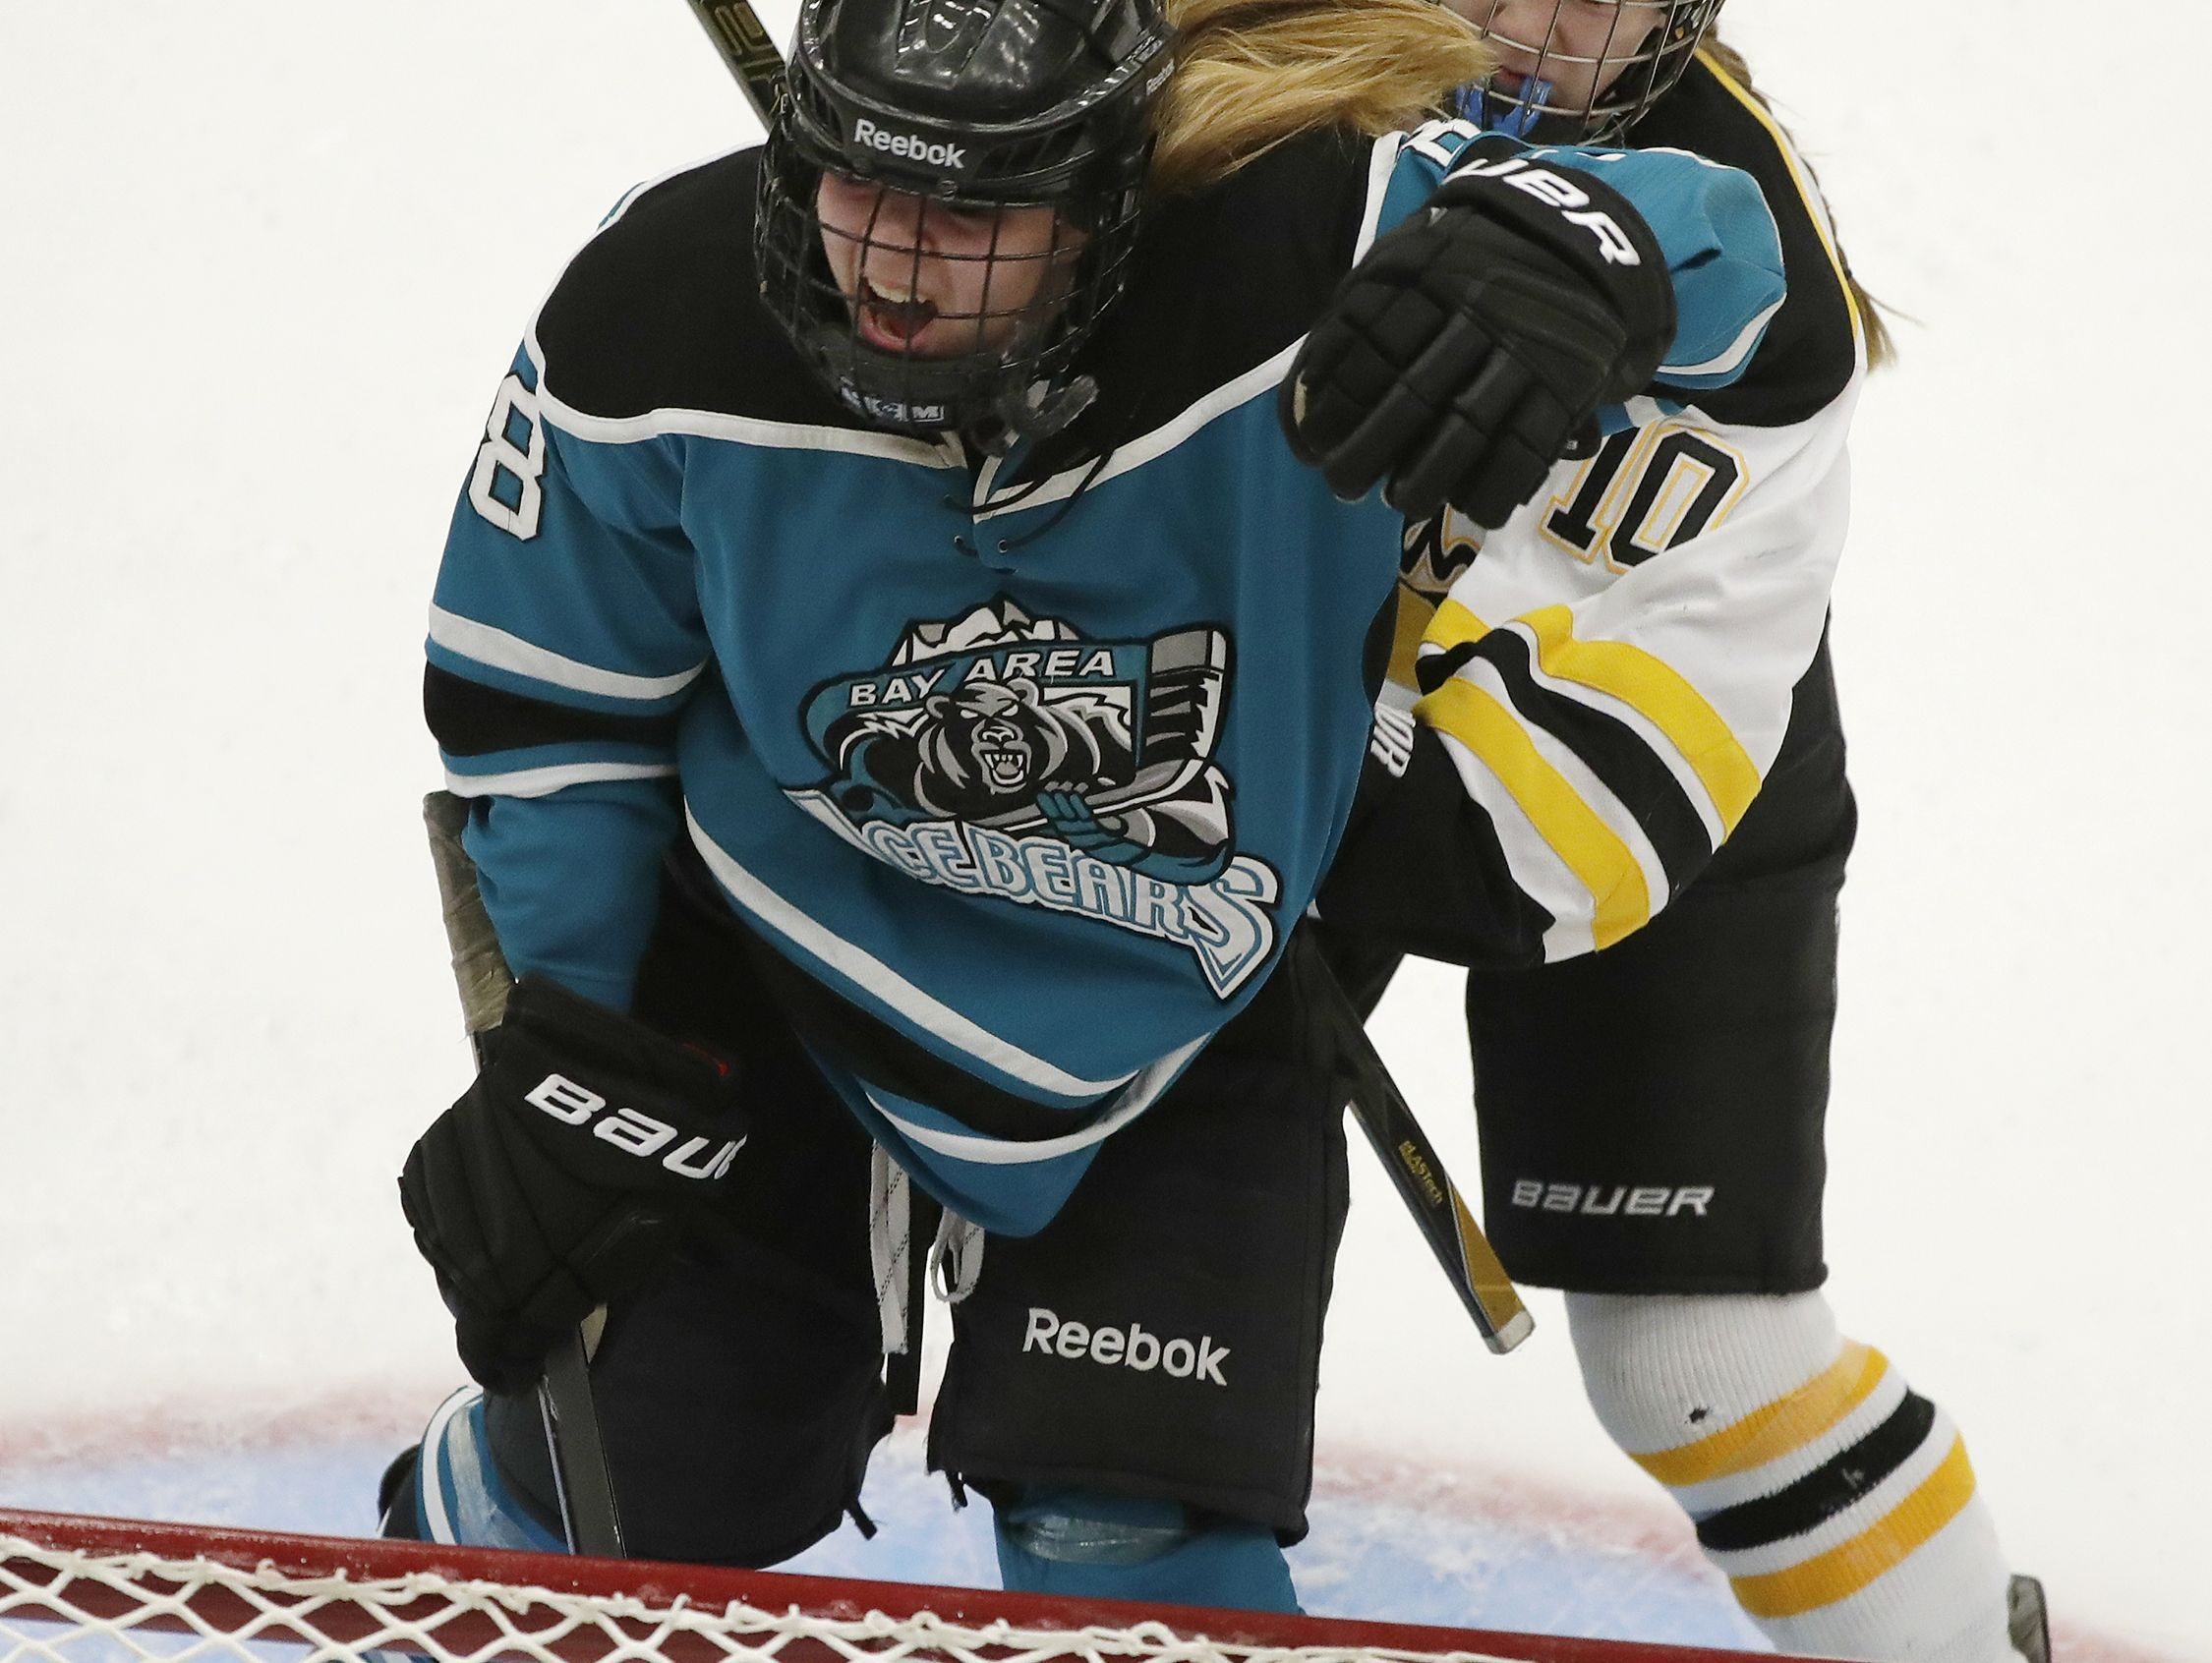 Bay Area Ice Bears forward Megan Saari (8) celebrates after scoring in the 3rd period against the Hayward Hurricanes during a girls semifinal match at the WIAA state hockey tournament on Friday at the Alliant Energy Center.